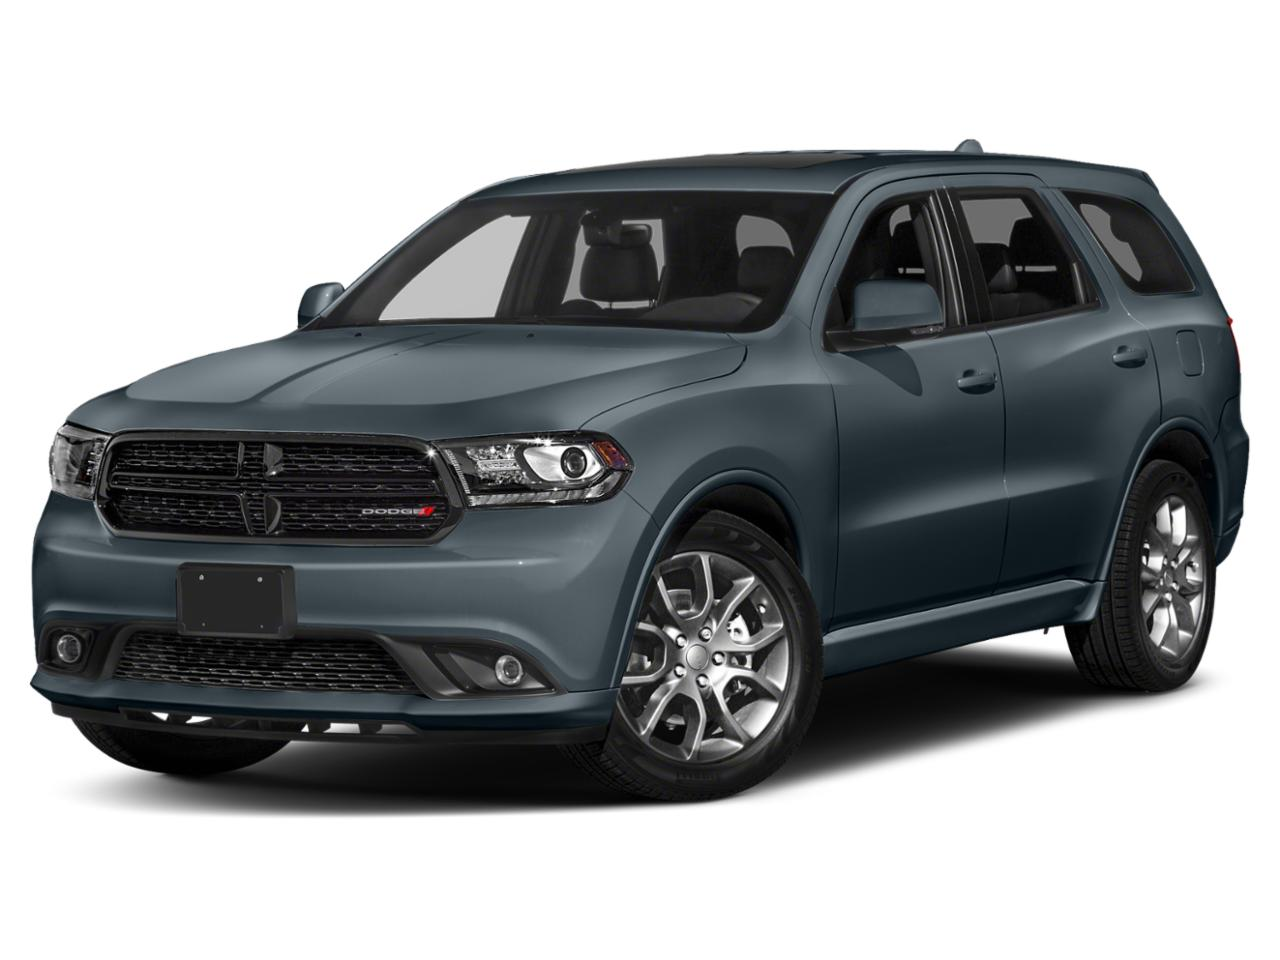 2020 Dodge Durango Vehicle Photo in Joliet, IL 60586